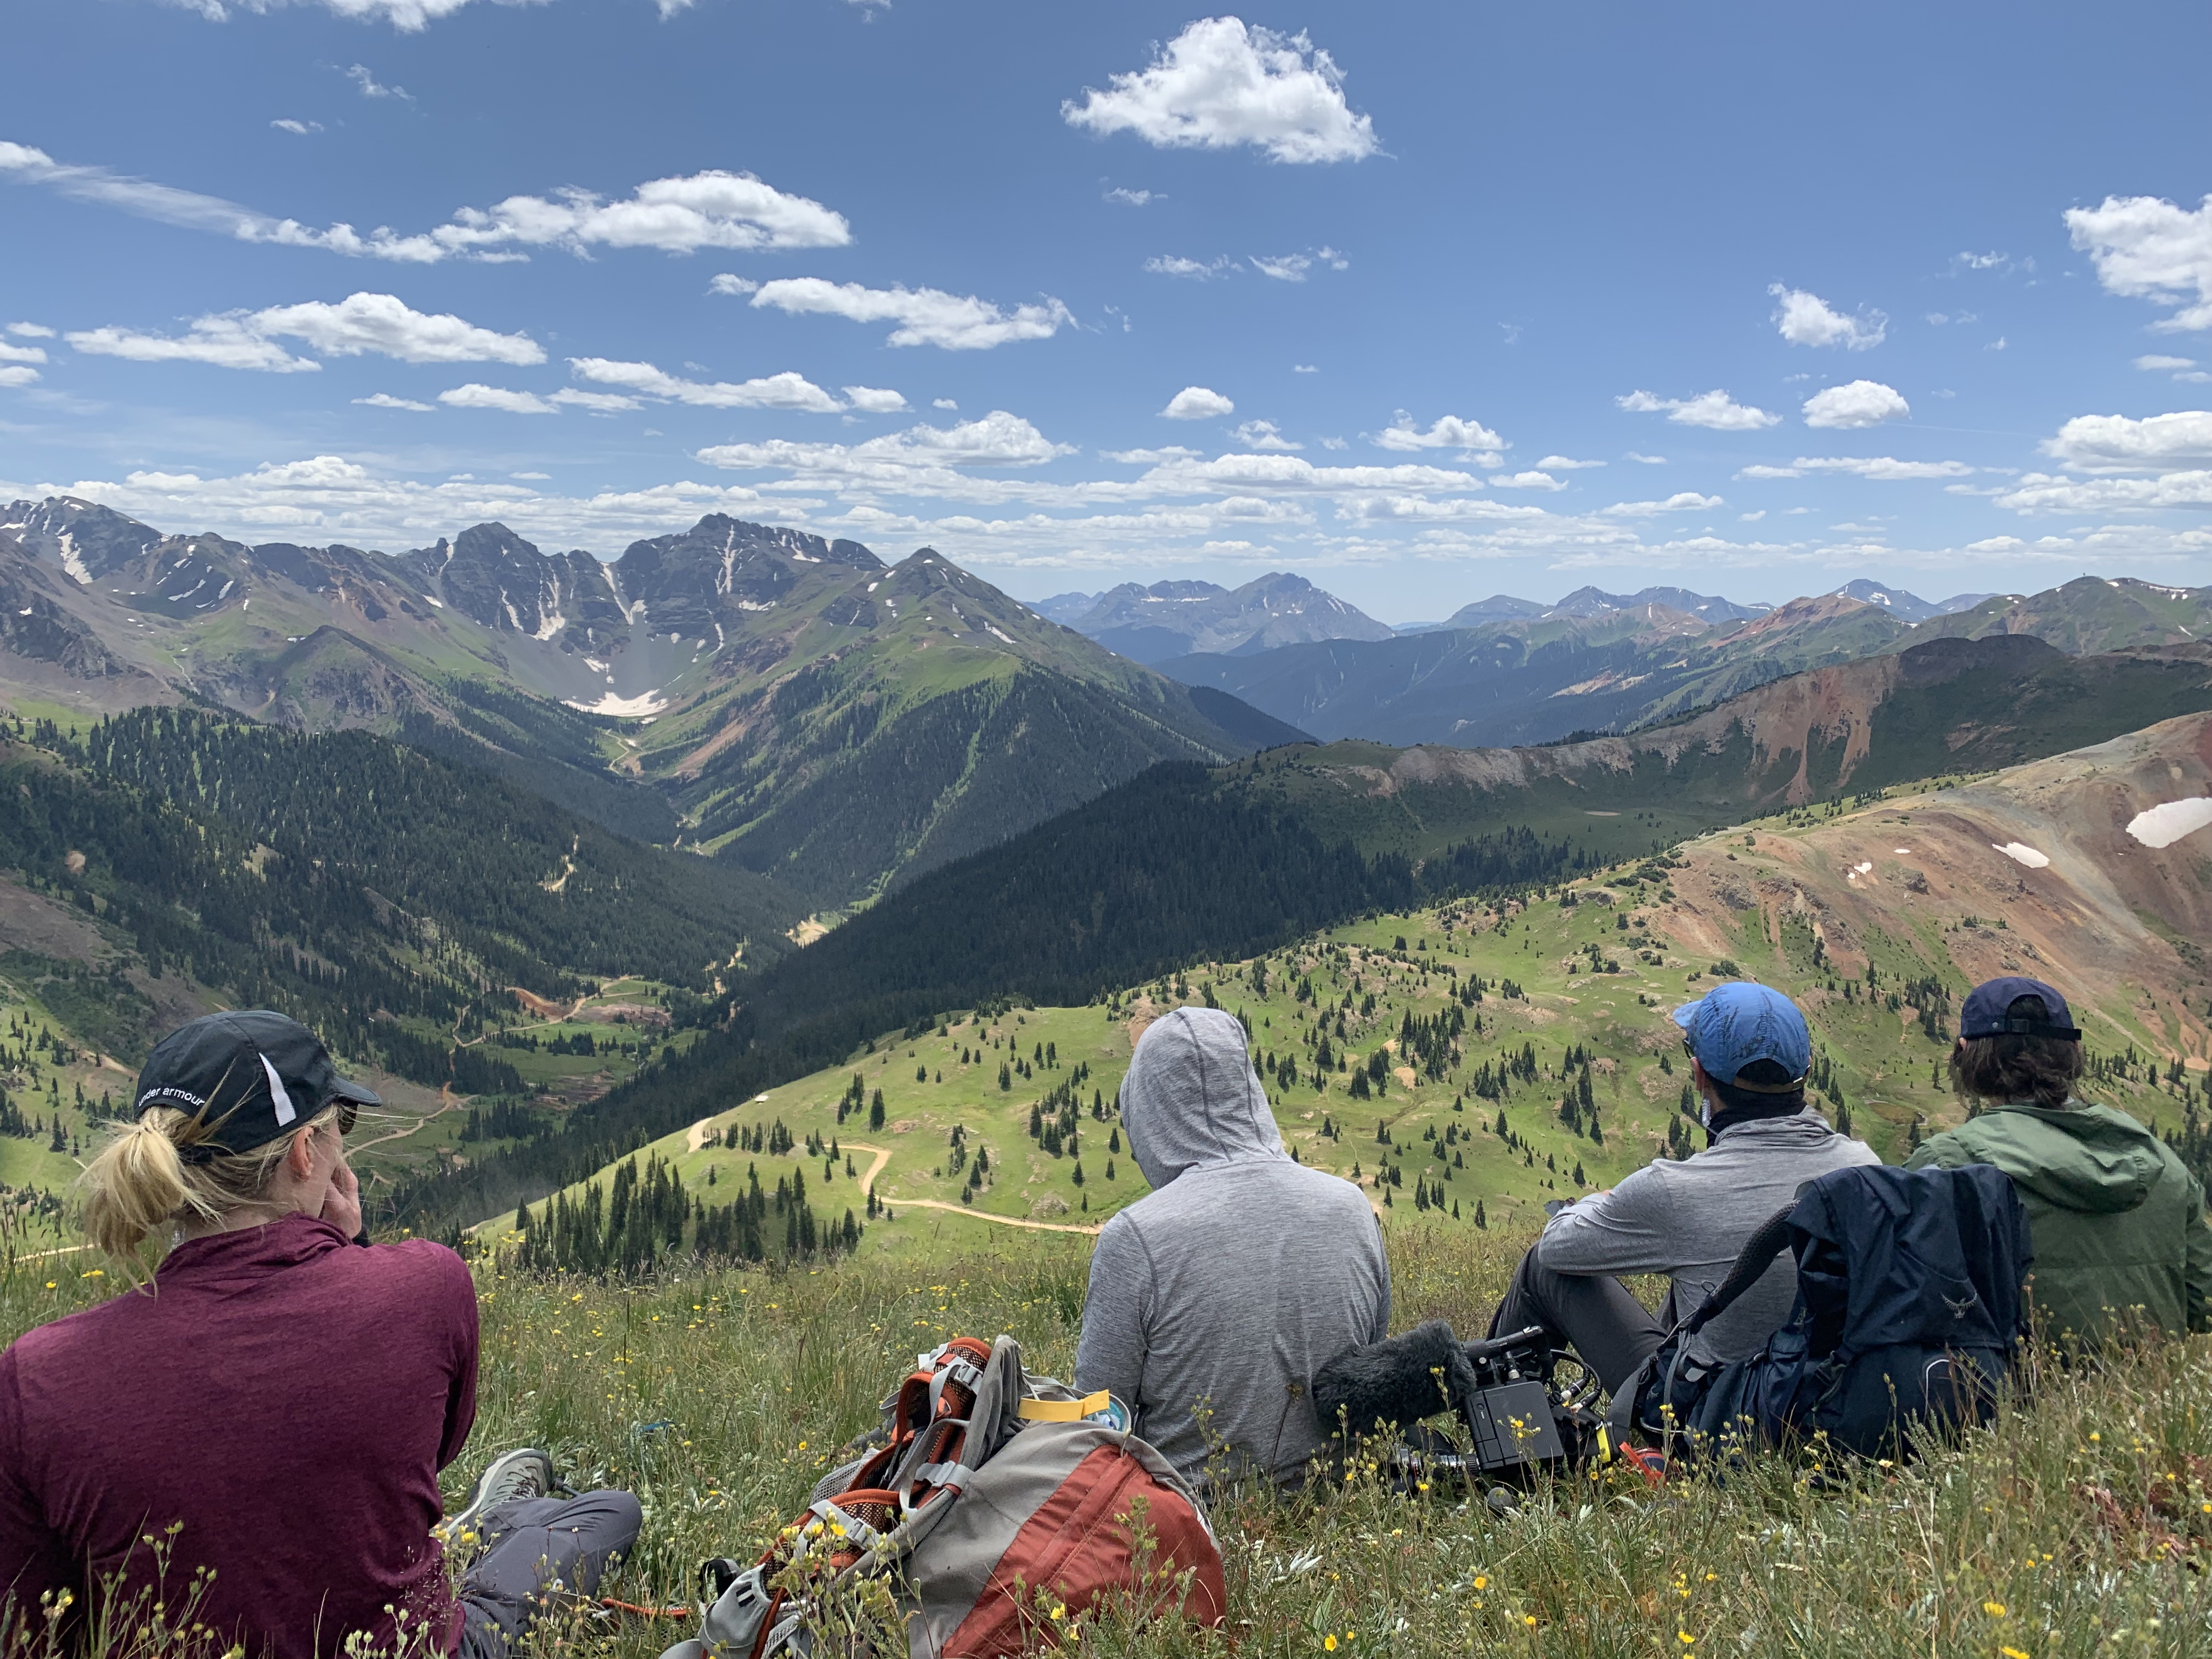 Students sitting on a mountain top